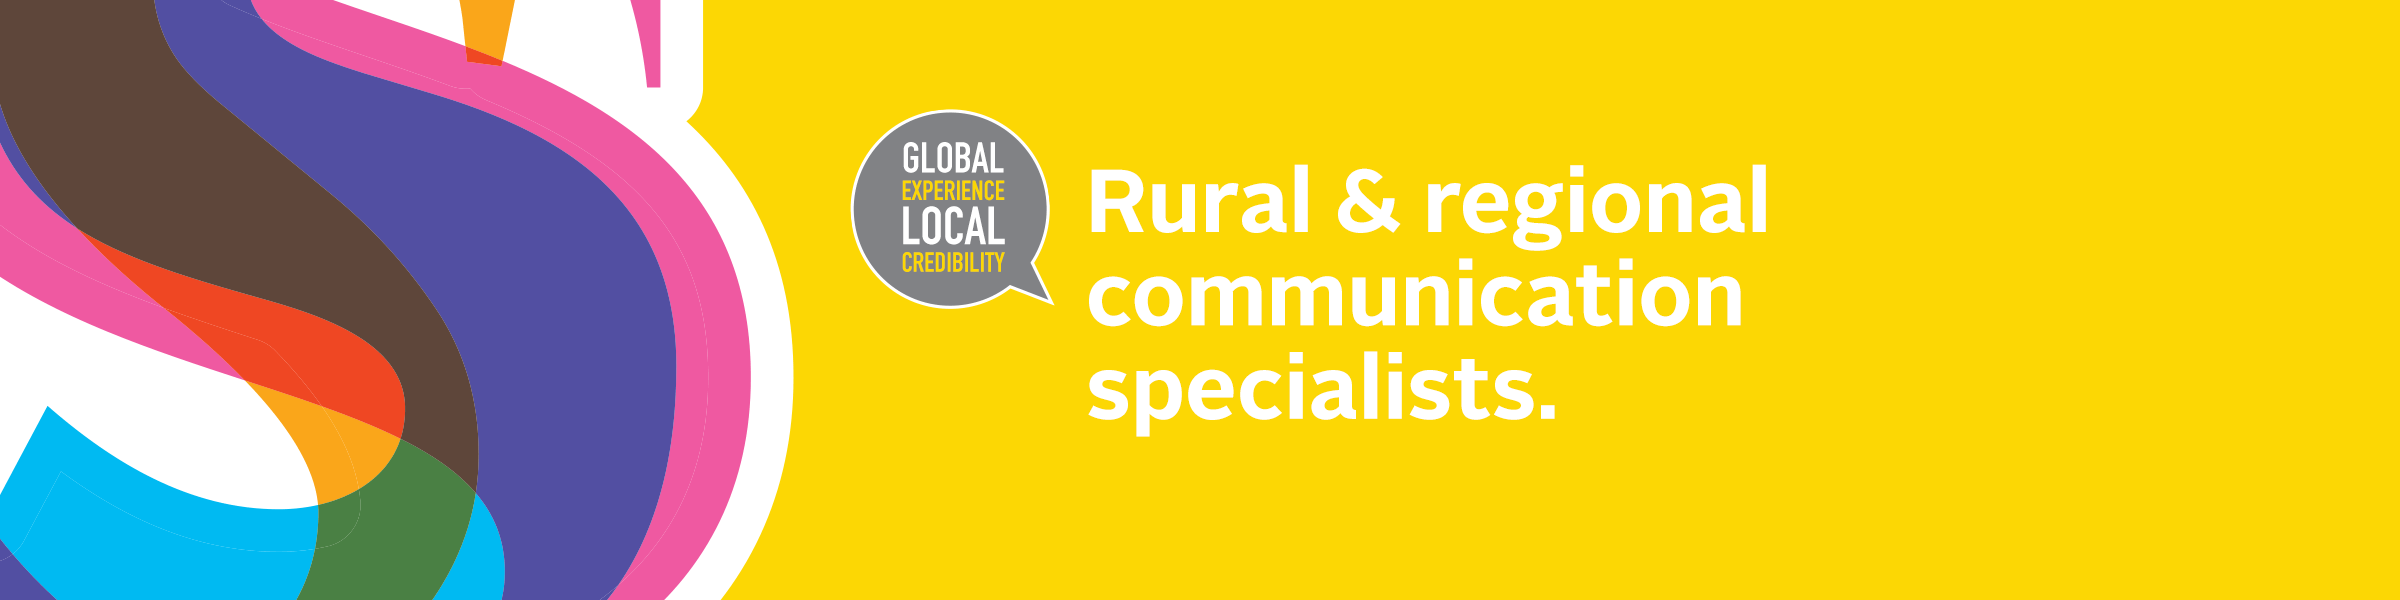 Rural & regional communication specialists.